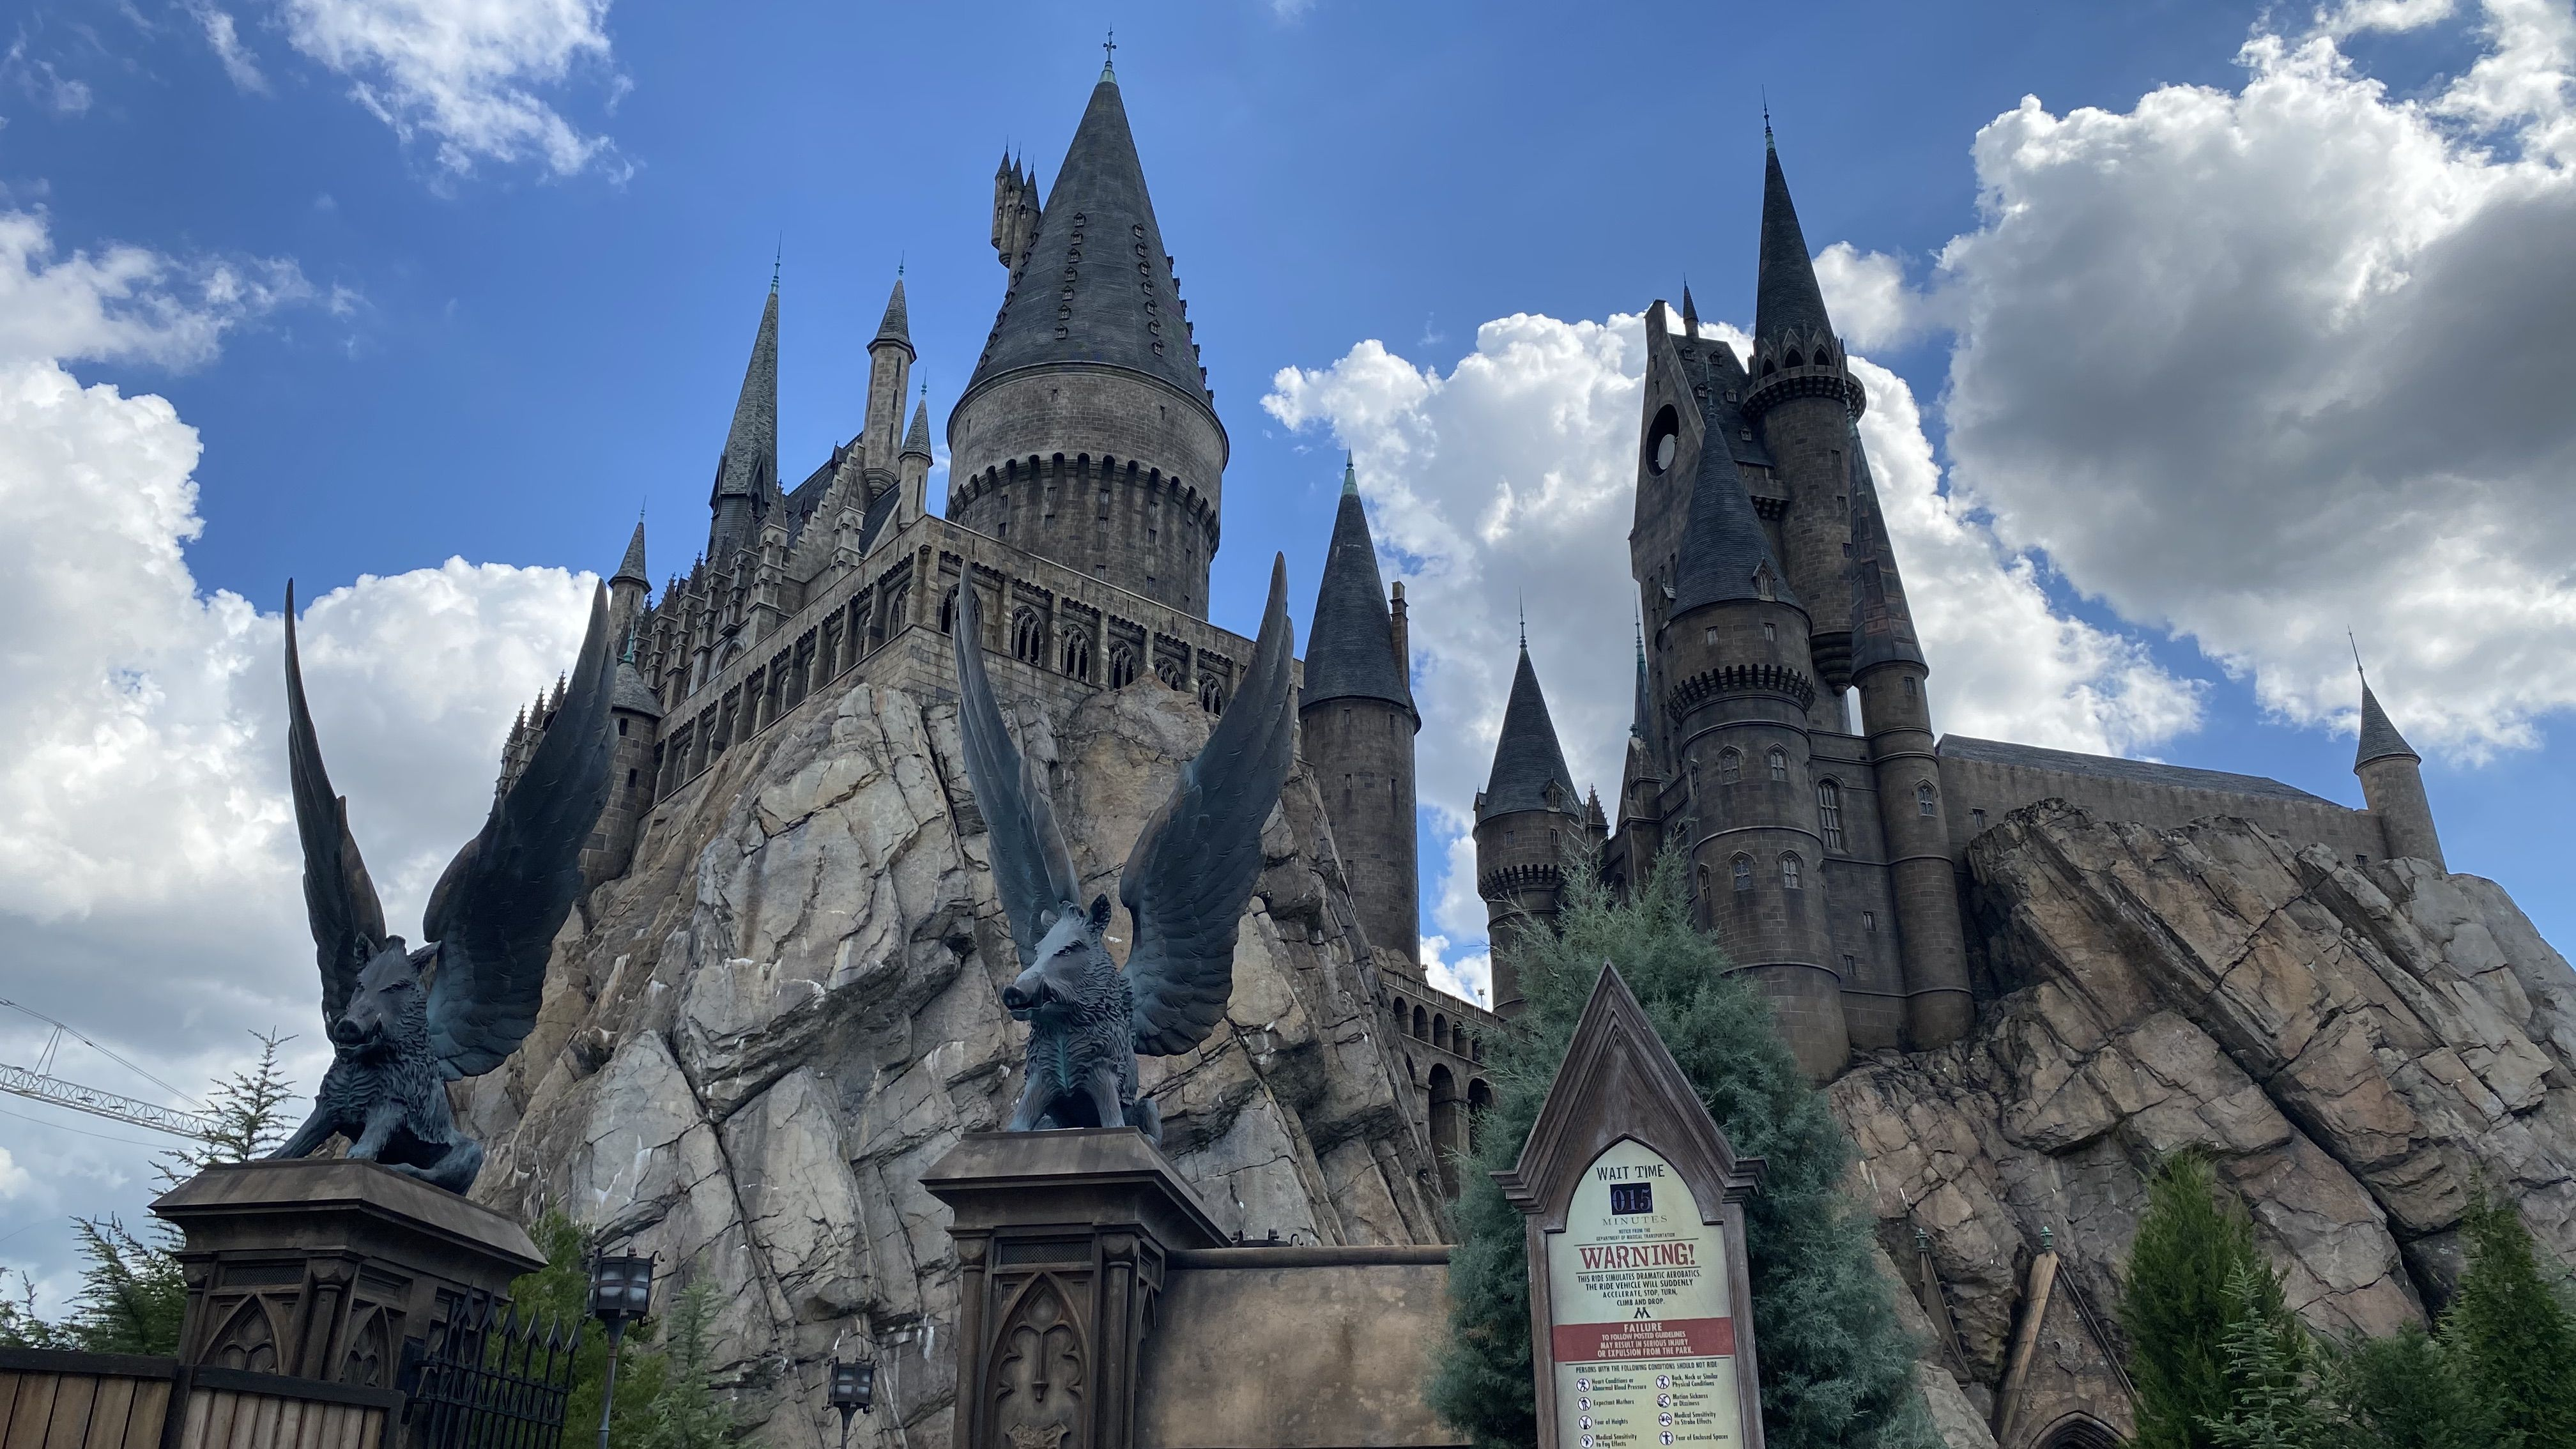 The Magical Rides At The Wizarding World Of Harry Potter In 2020 Harry Potter World Rides Wizarding World Of Harry Potter Harry Potter Cast